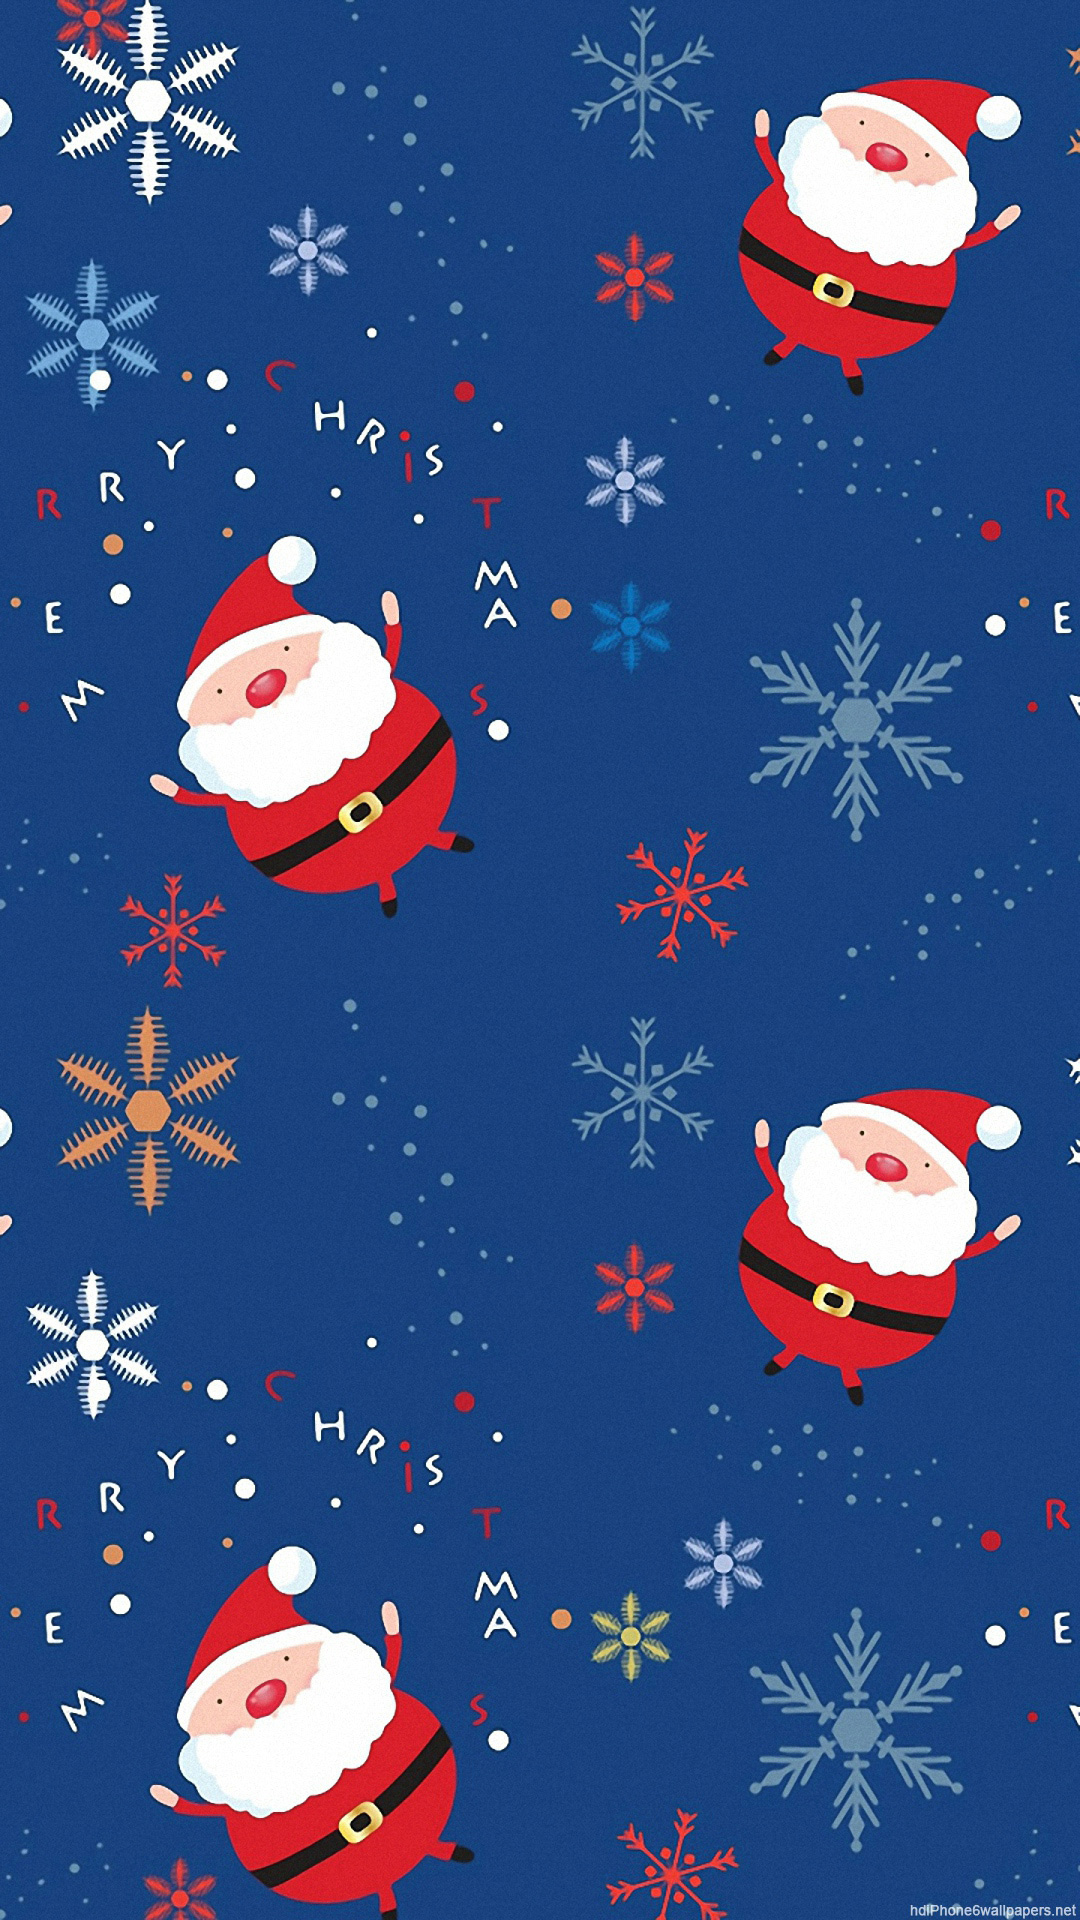 Free Christmas Wallpapers For Iphone 7 And Iphone 7 Plus Iphoneheat